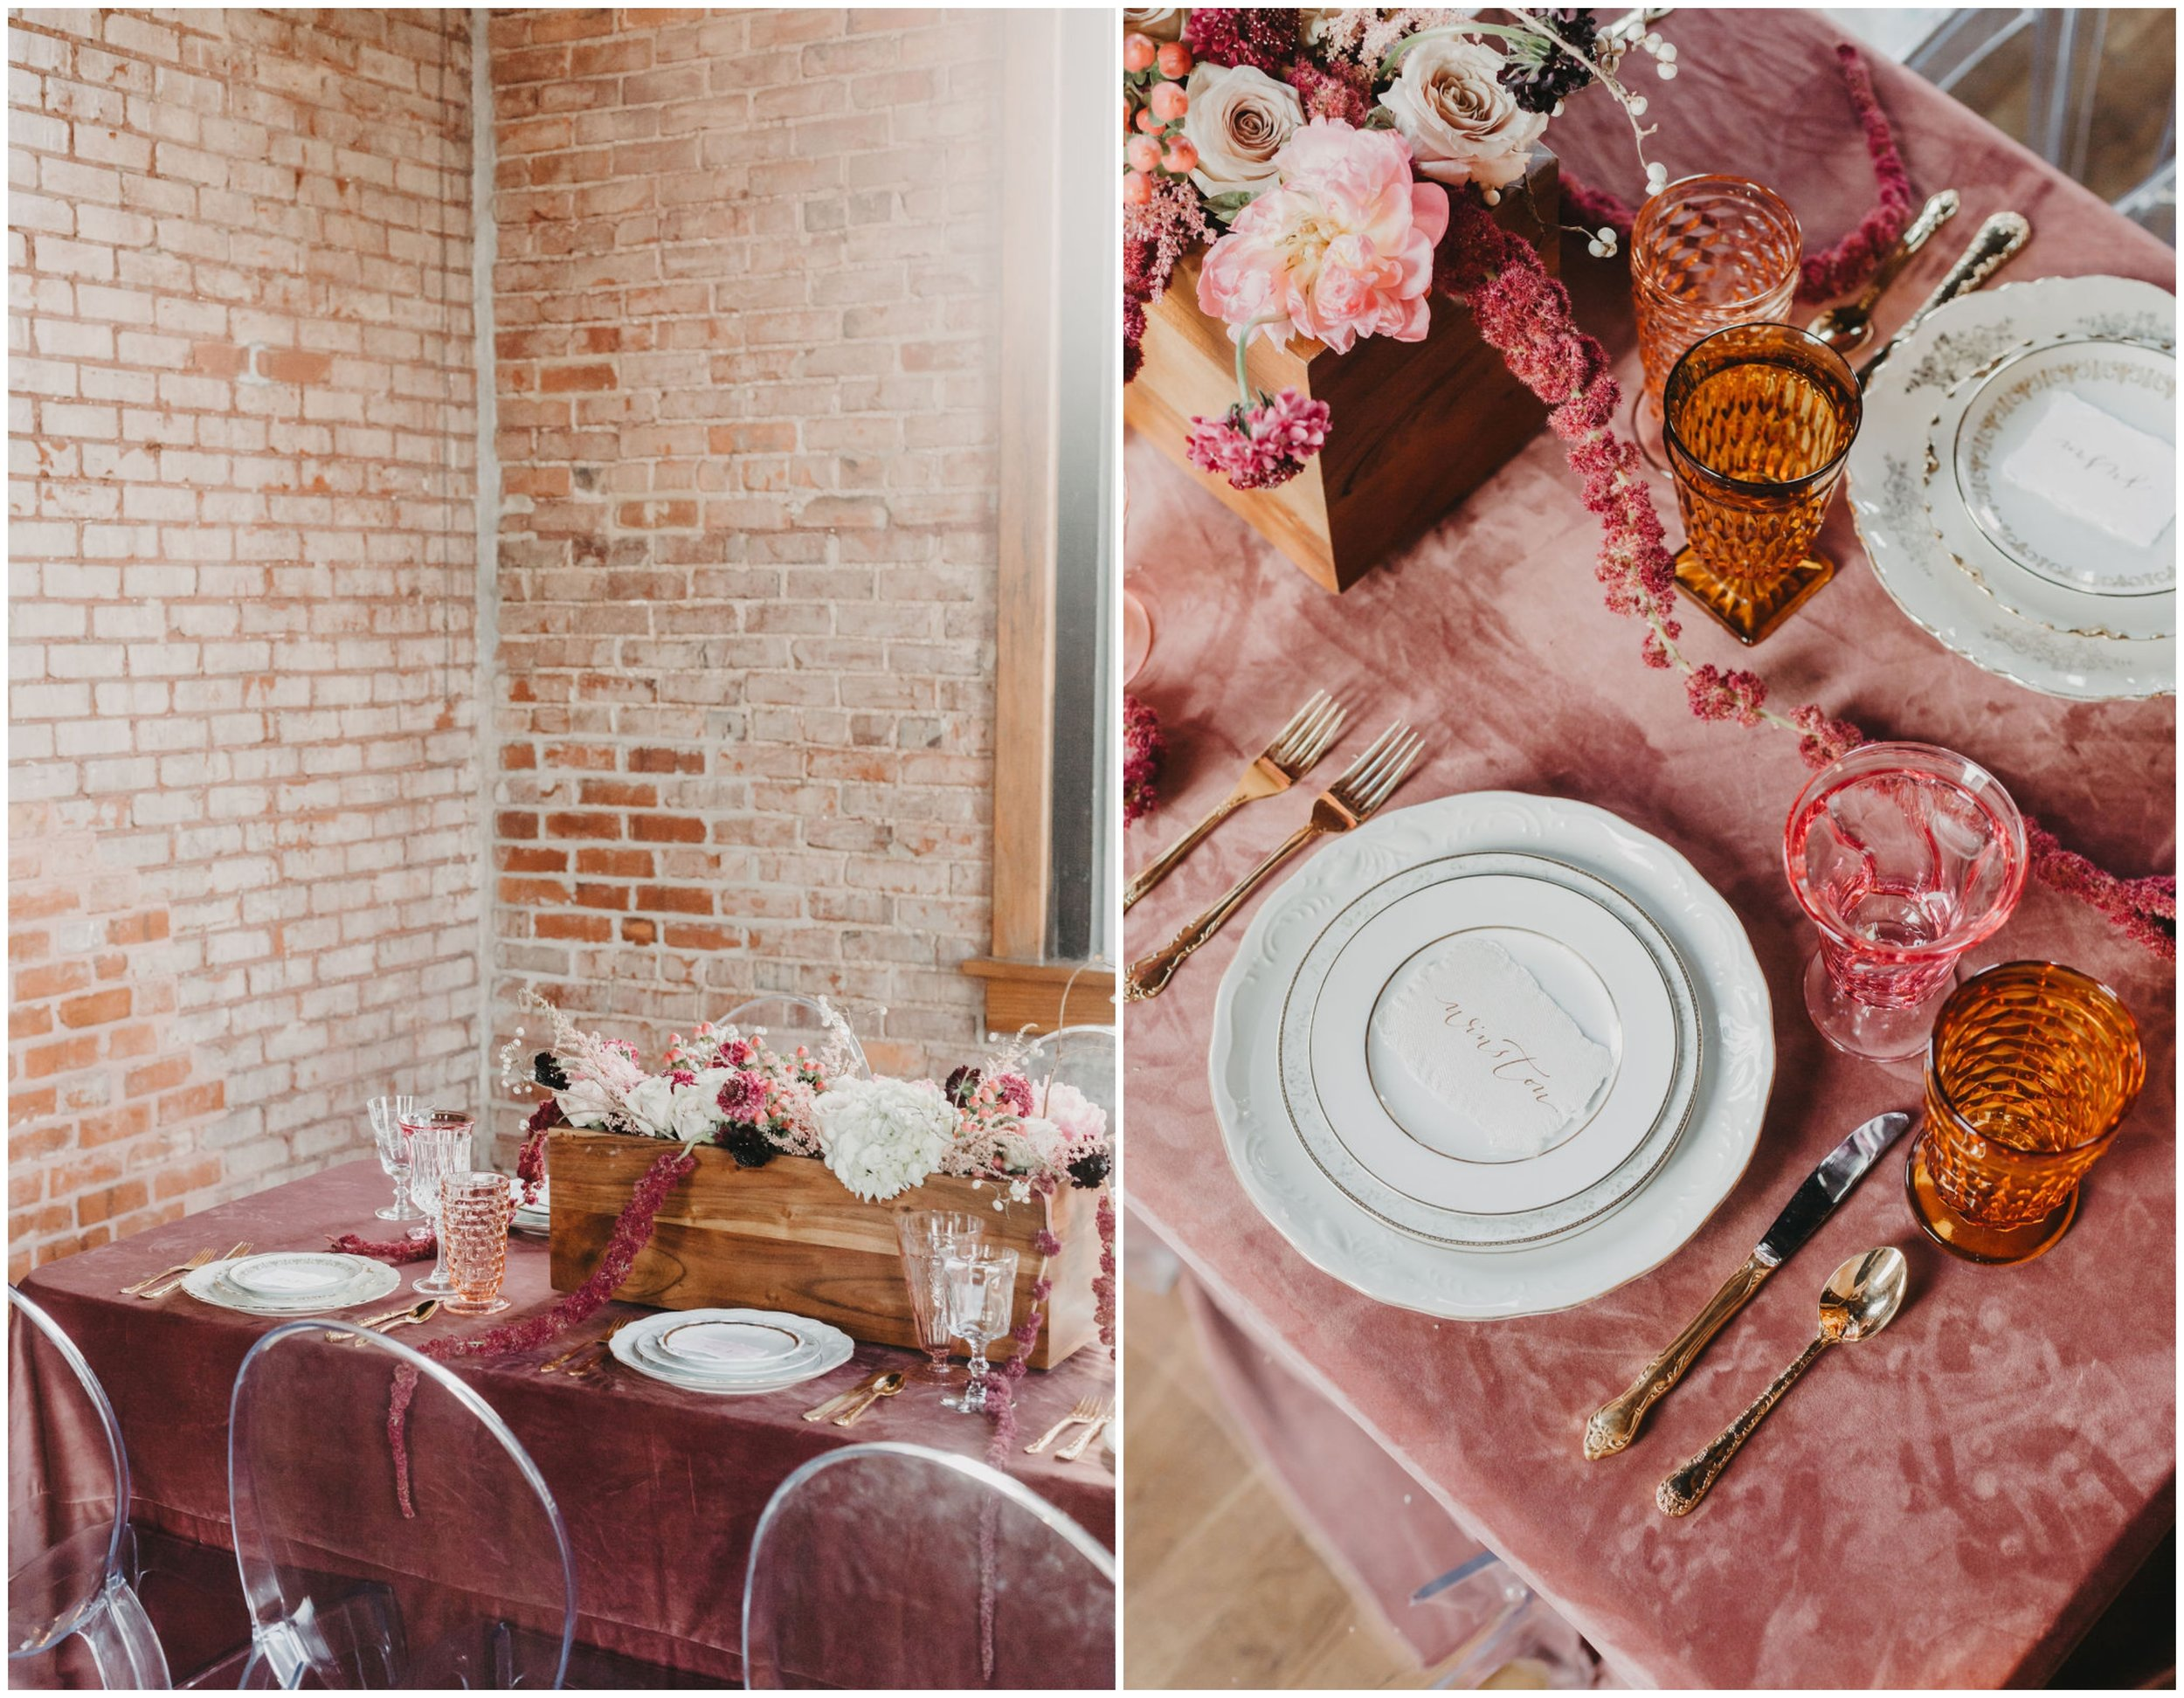 PHOTOGRAPHY -  ALEXIS DIMMER PHOTOGRAPHY , VENUE -  THE CHURCH ON MAIN , PLANNER -  ELIZABETH EVENTS , CALLIGRAPHY -  WHITE INK CALLIGRAPHY , FLORIST -  STEMS AT FIVE POINTS , GHOST CHAIRS -  LUMA DESIGNS , VELVET TABLECLOTH -  SOUTHERN EVENTS ONLINE , VINTAGE & SPECIALTY RENTALS -  THE COPPER QUAIL